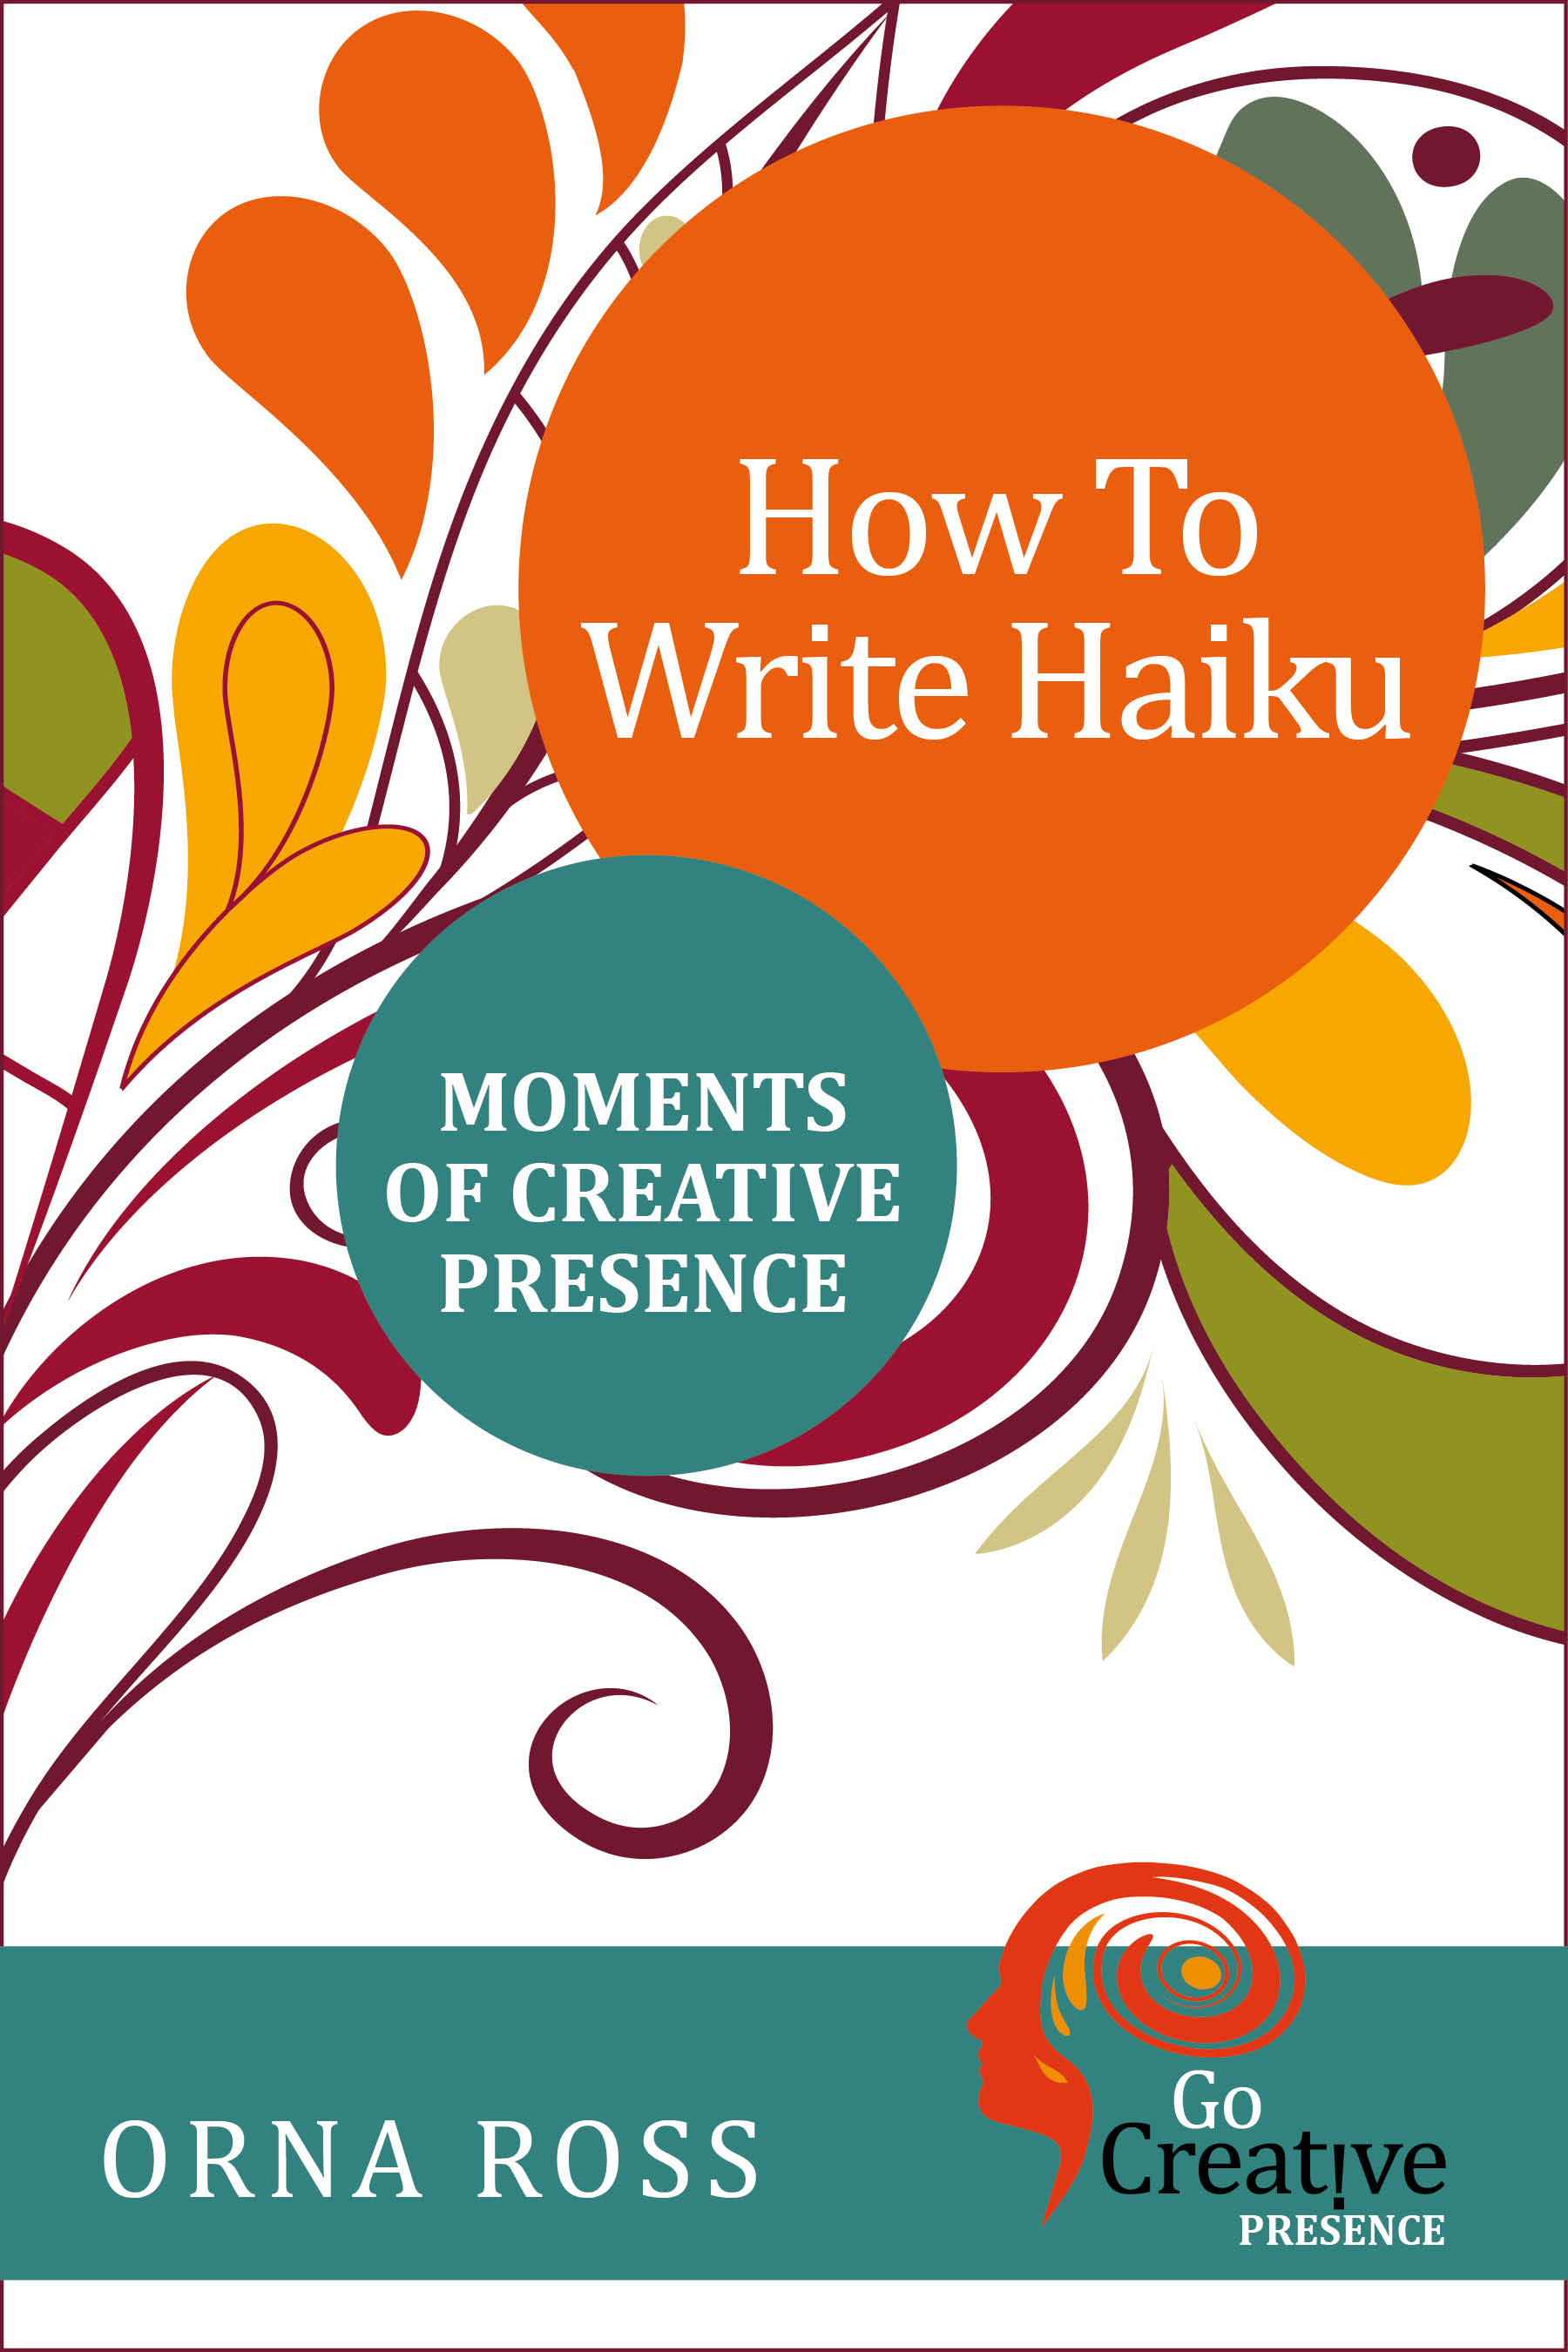 How To Write Haiku: Moments Of Creative Presence